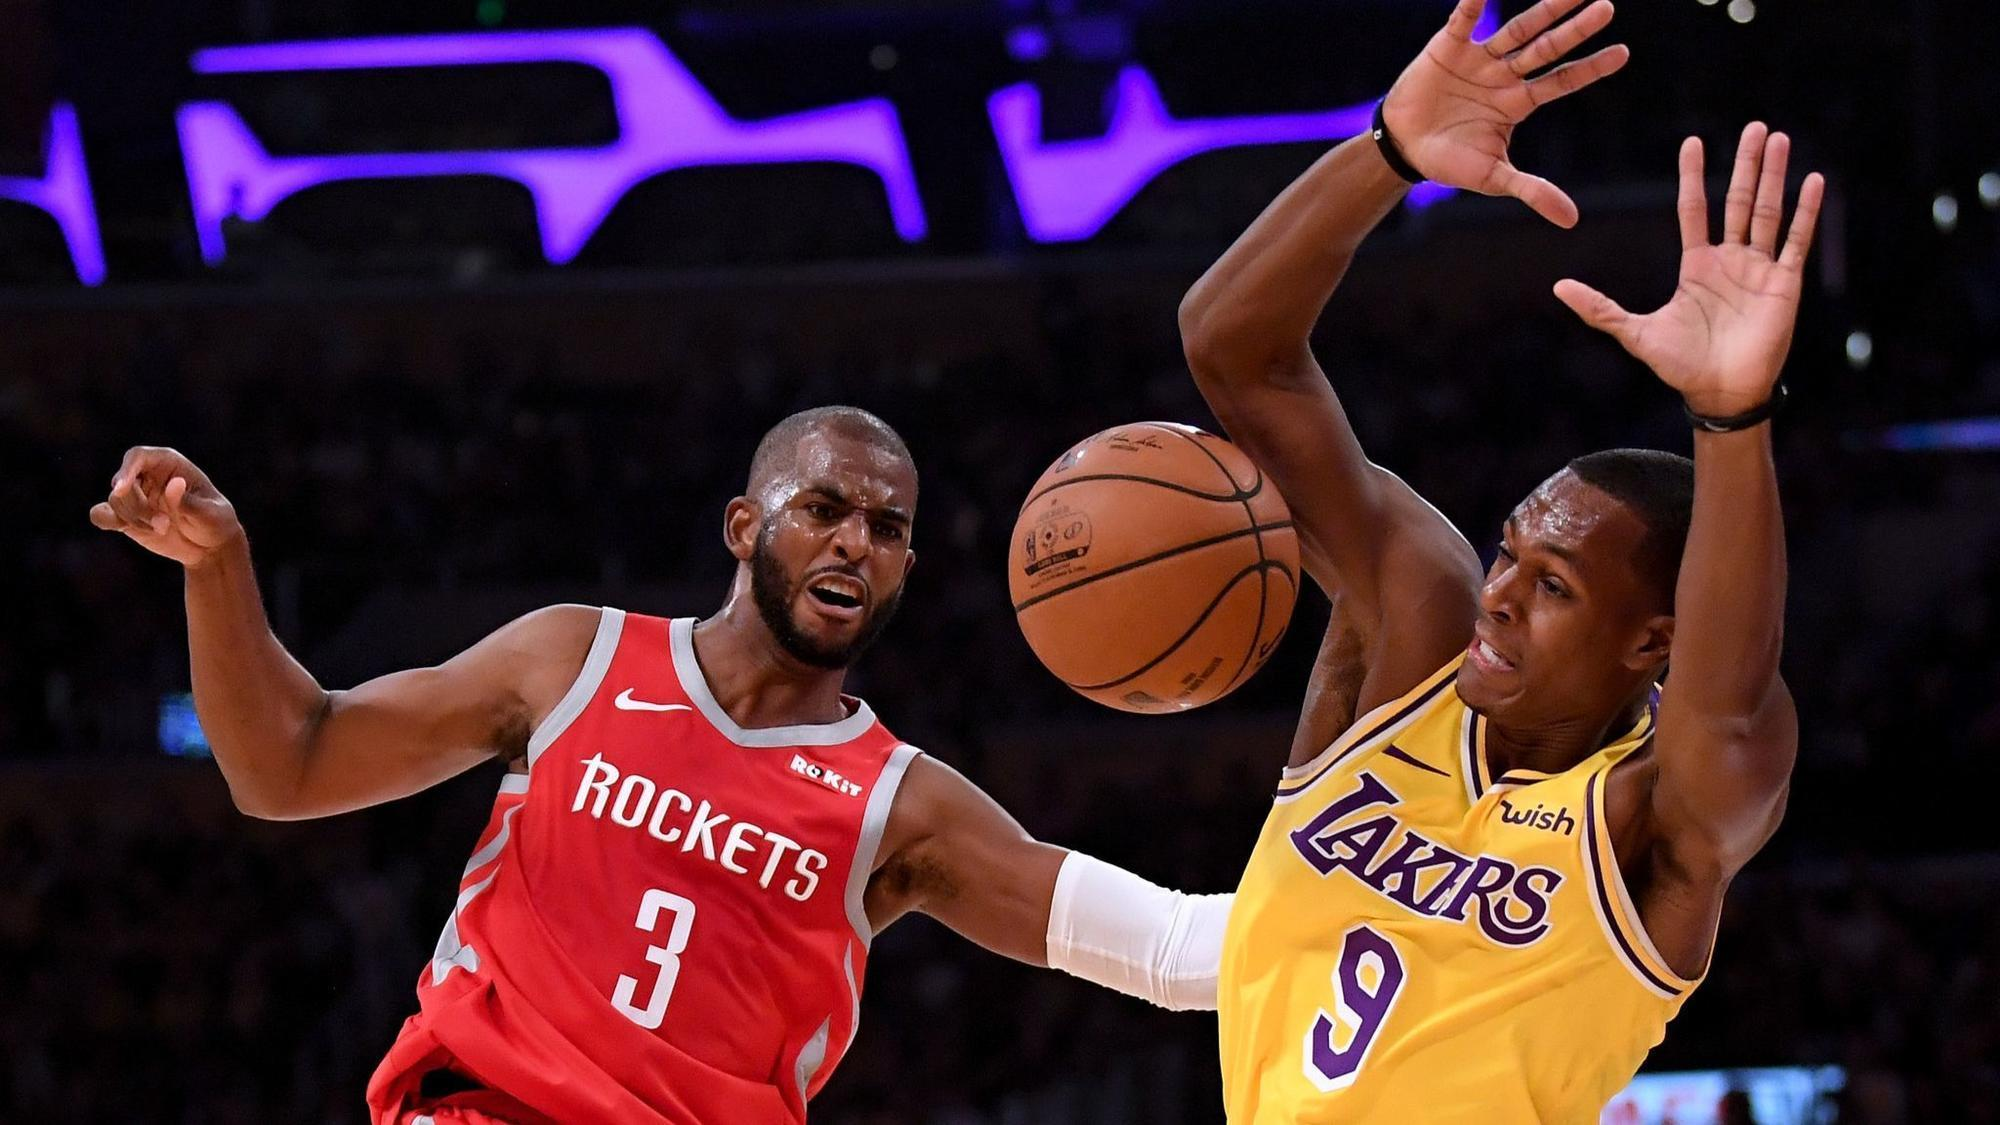 Rajon Rondo believes NBA sides with Chris Paul because of 'good guy' image but says he's 'a horrible teammate'